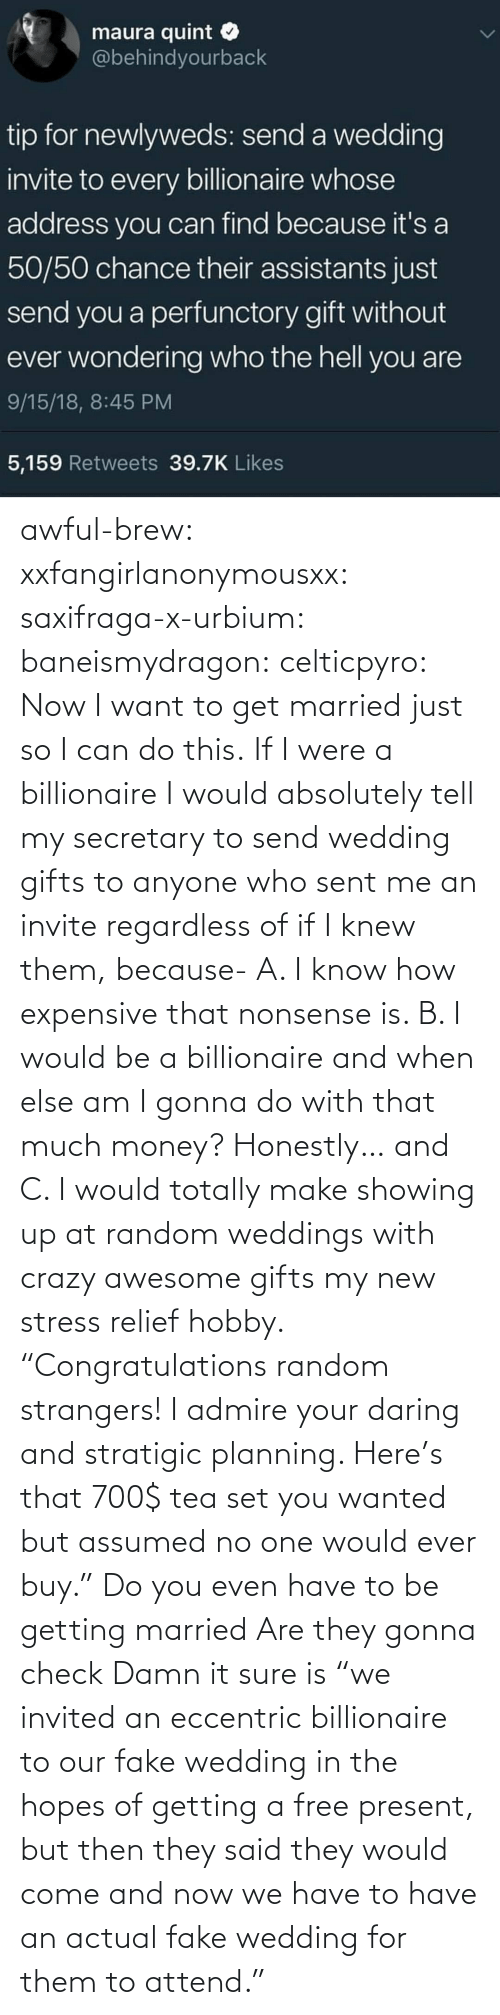 "But Then: awful-brew:  xxfangirlanonymousxx:  saxifraga-x-urbium:  baneismydragon:  celticpyro: Now I want to get married just so I can do this.  If I were a billionaire I would absolutely tell my secretary to send wedding gifts to anyone who sent me an invite regardless of if I knew them, because- A. I know how expensive that nonsense is. B. I would be a billionaire and when else am I gonna do with that much money? Honestly… and C. I would totally make showing up at random weddings with crazy awesome gifts my new stress relief hobby. ""Congratulations random strangers! I admire your daring and stratigic planning. Here's that 700$ tea set you wanted but assumed no one would ever buy.""   Do you even have to be getting married Are they gonna check   Damn it sure is  ""we invited an eccentric billionaire to our fake wedding in the hopes of getting a free present, but then they said they would come and now we have to have an actual fake wedding for them to attend."""